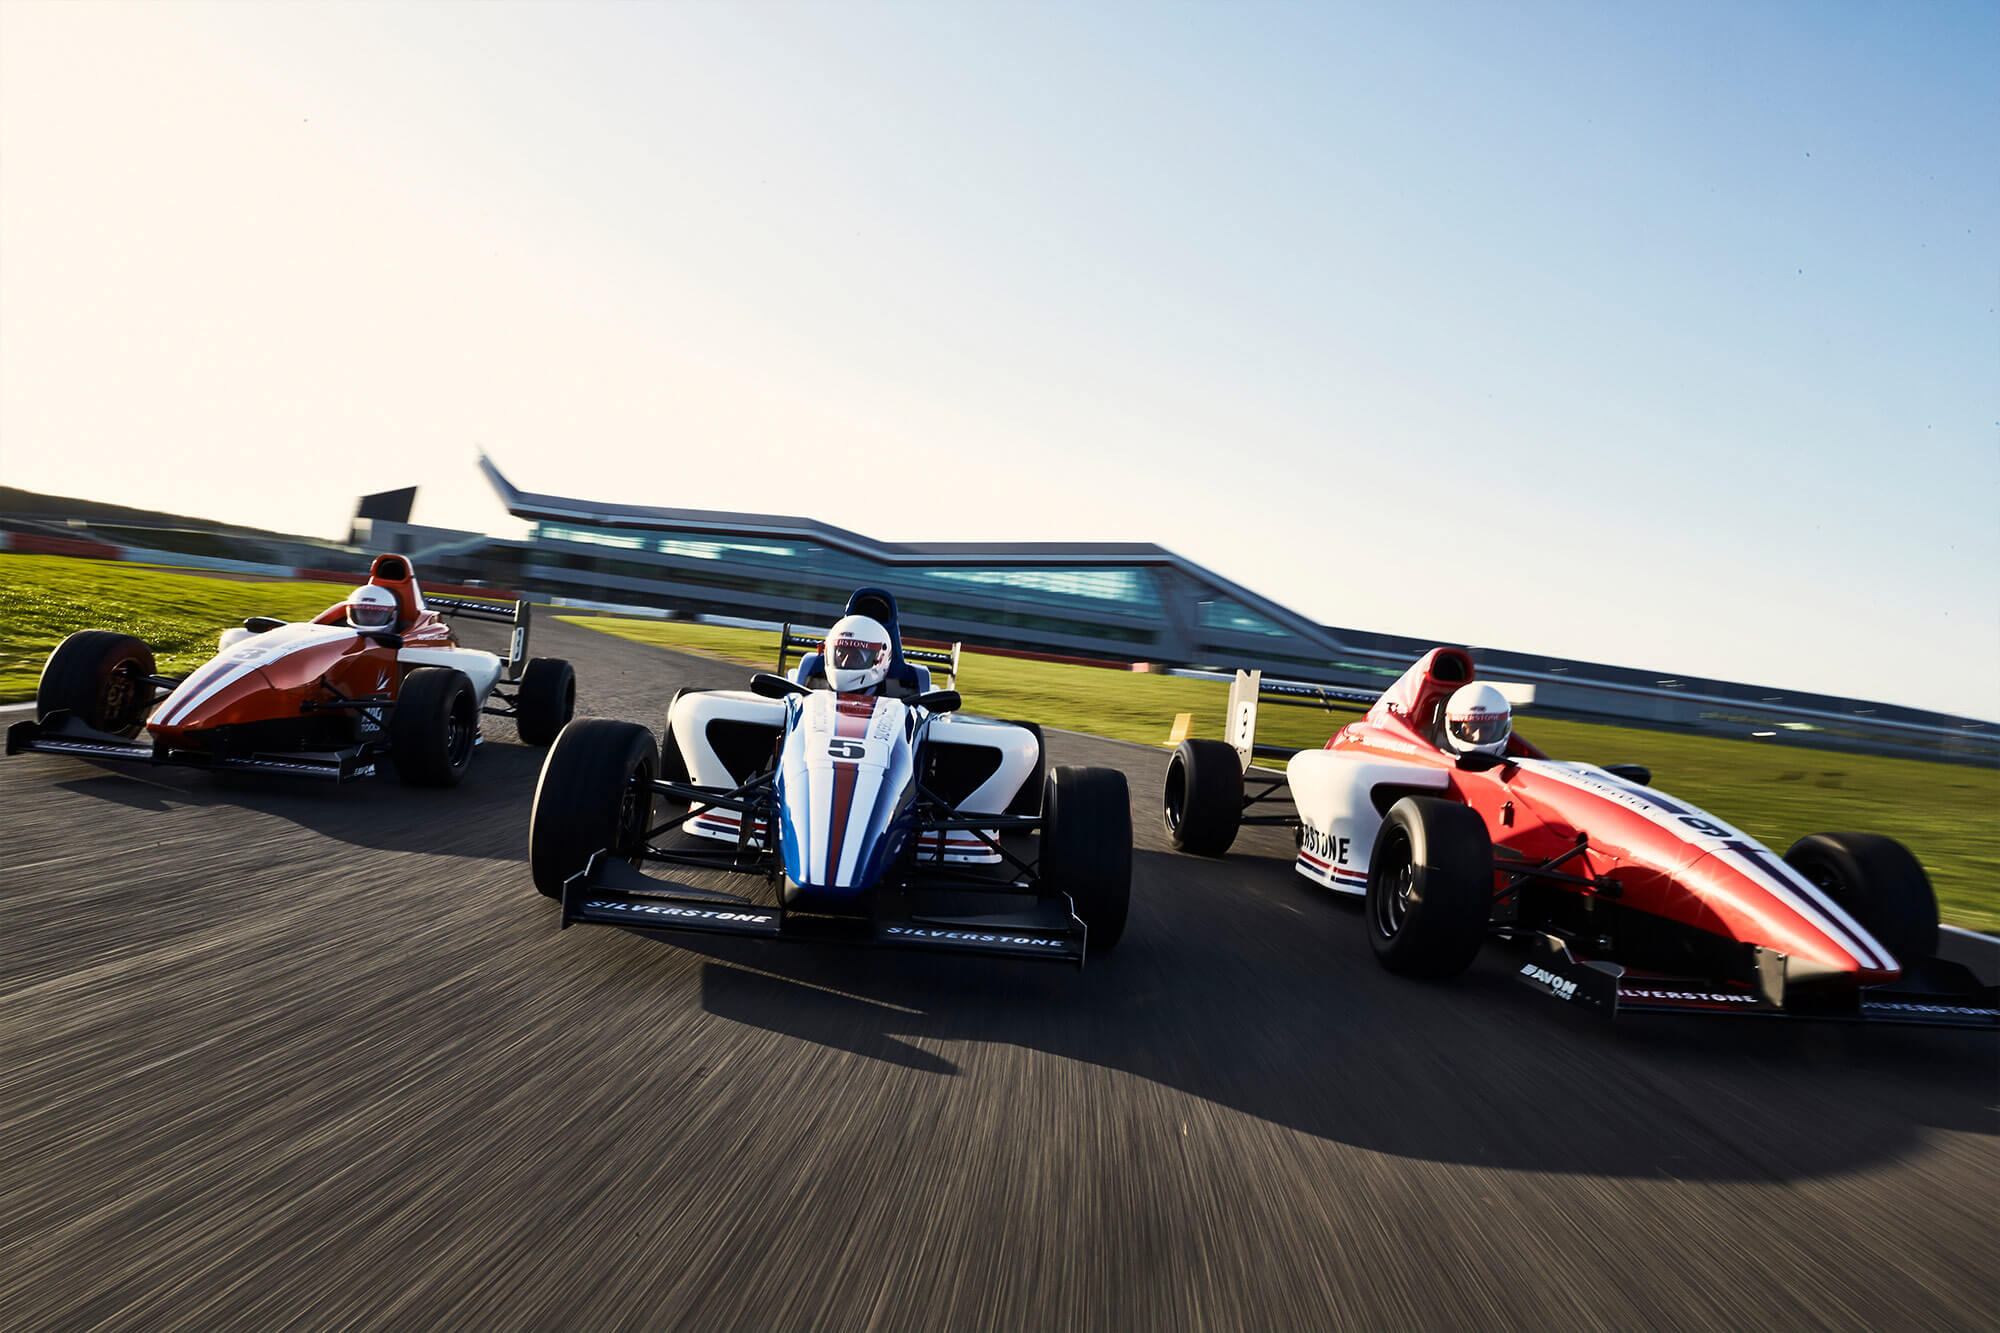 Single seater cars on track